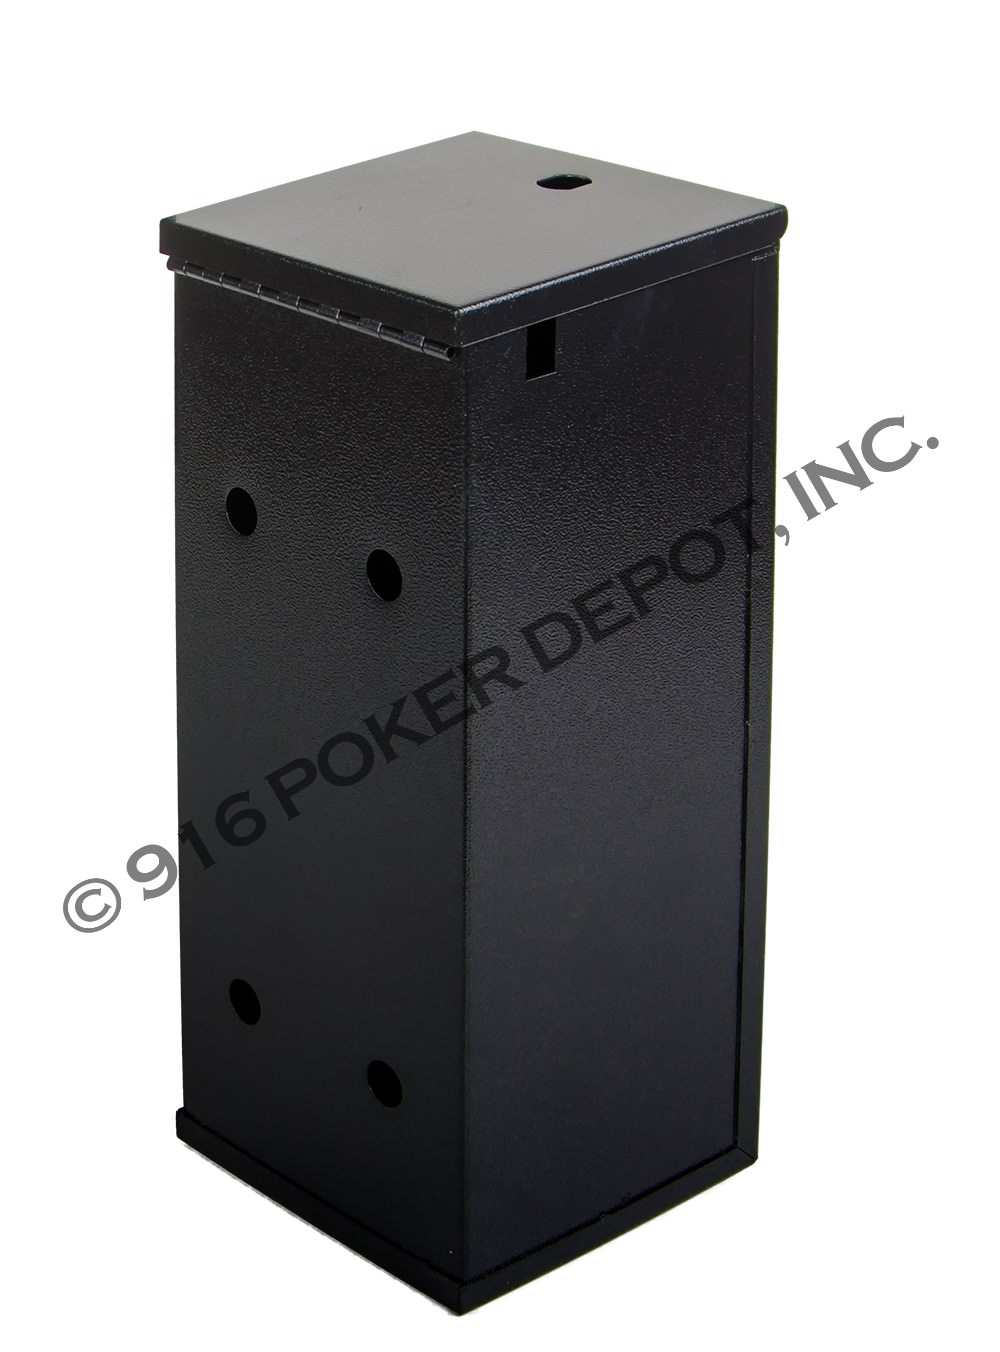 Toke Box - Black